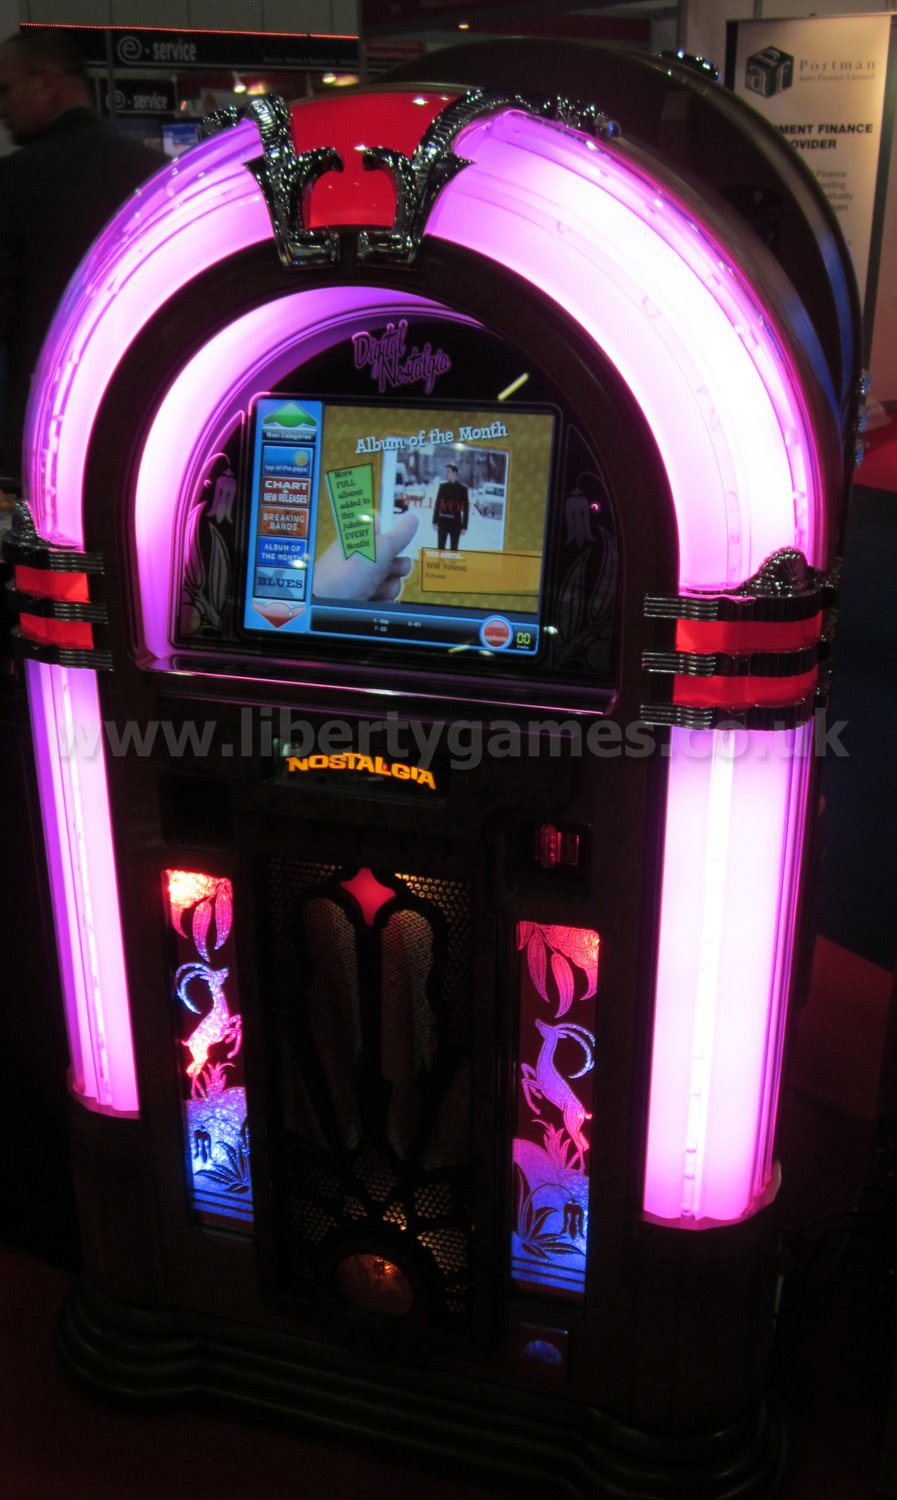 Sound Leisure Digital Nostalgia Digital Jukebox Liberty